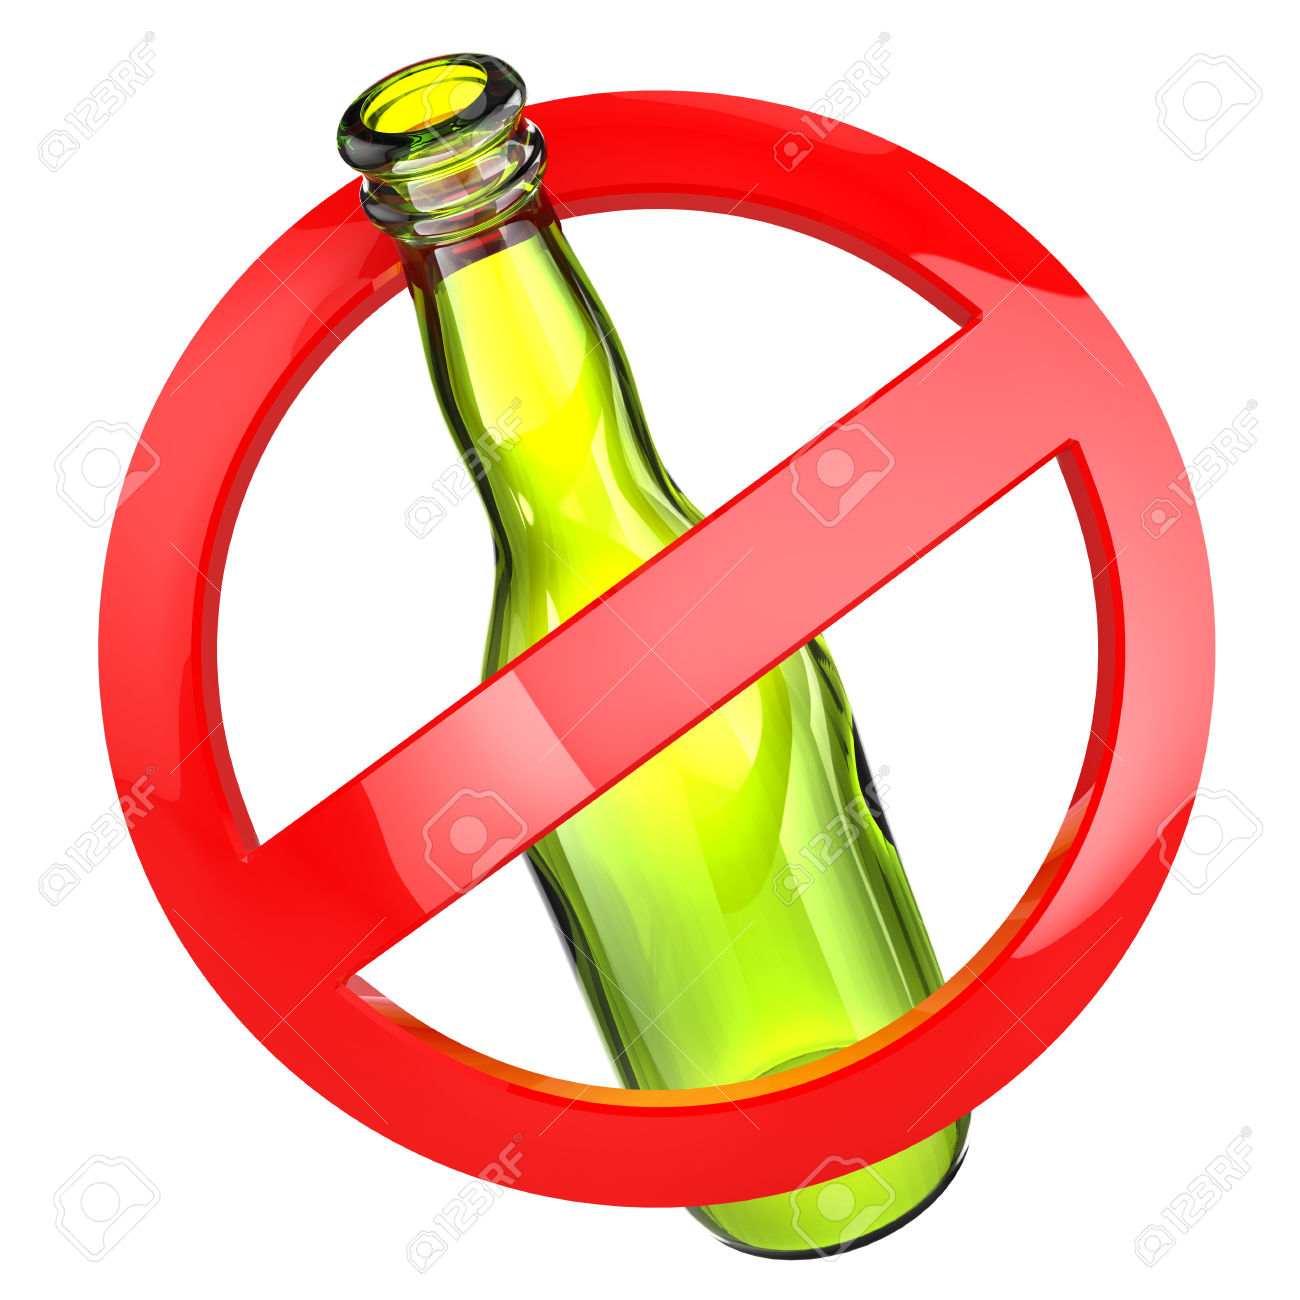 32939568 Stop alcohol or No glass sign Bottle on white isolated background Stock Photo